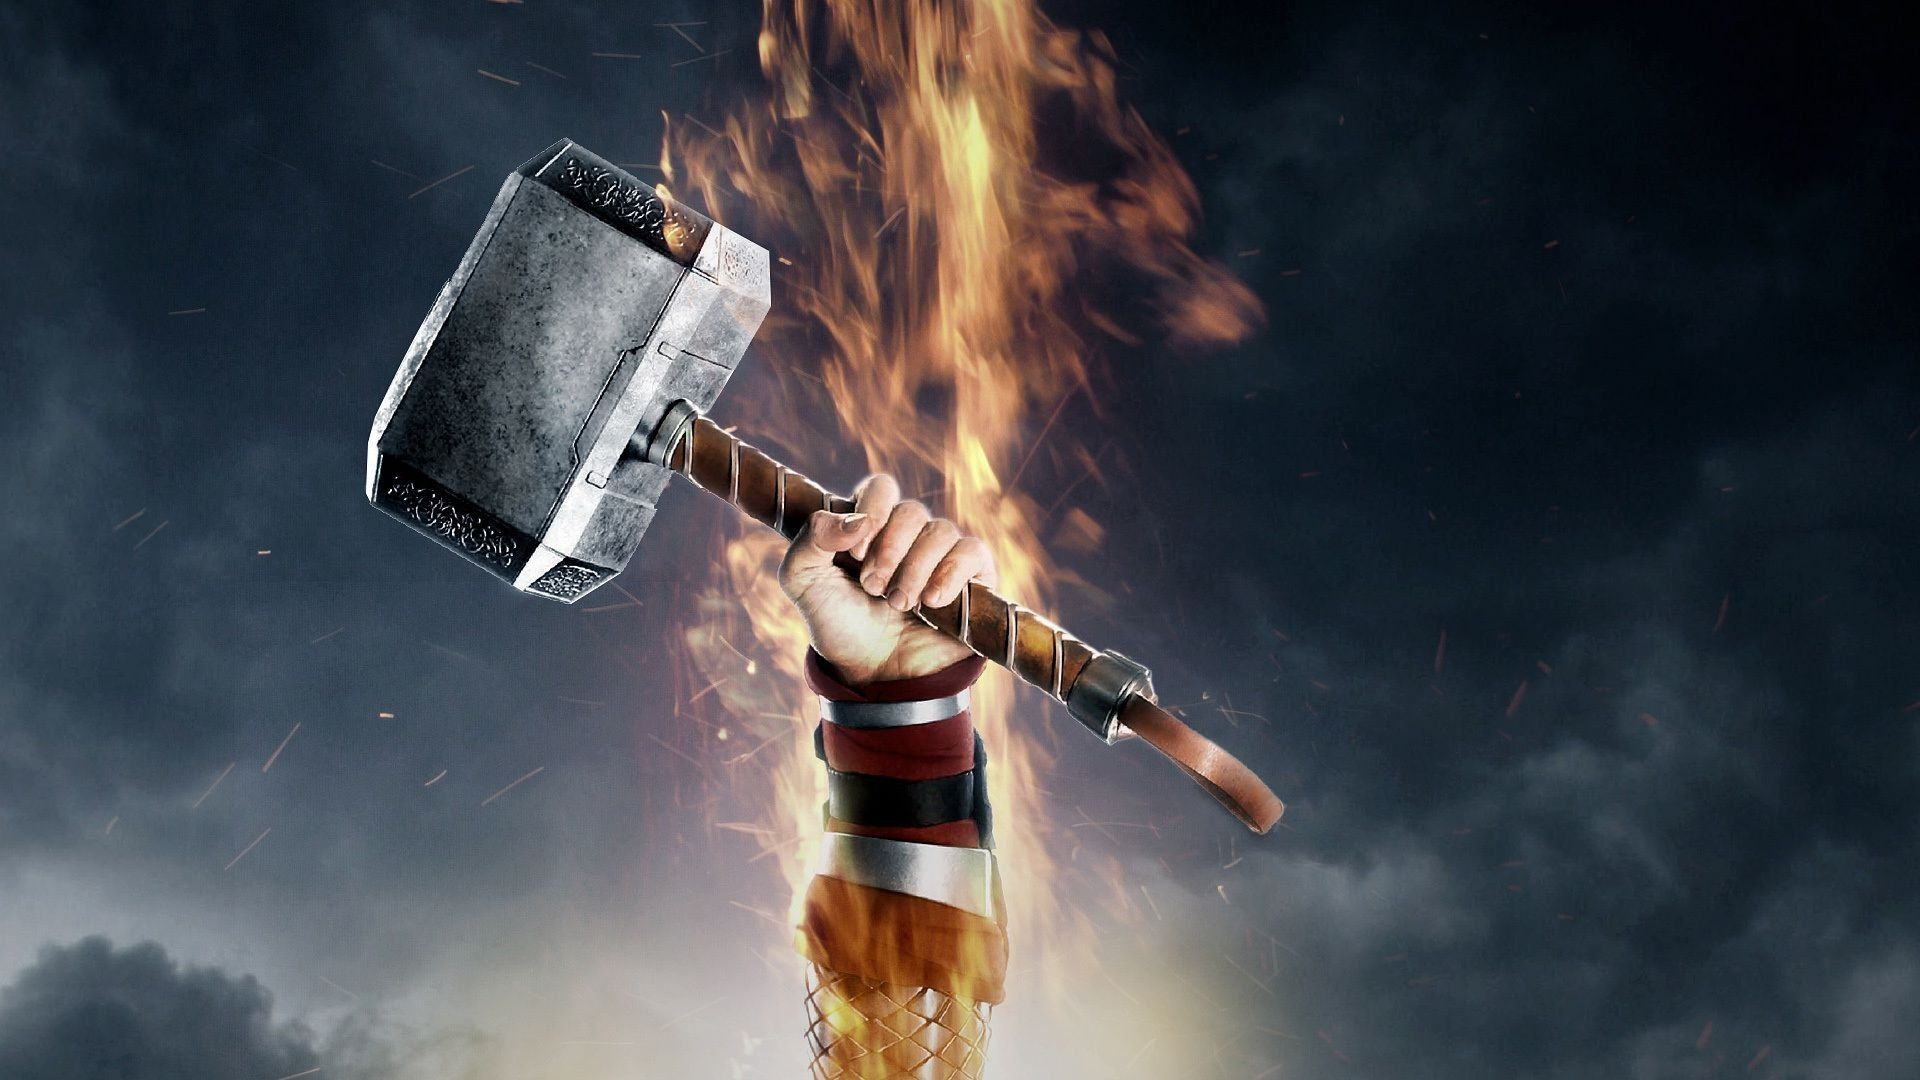 thor hammer hd desktop backgrounds 4839 hd wallpapers site